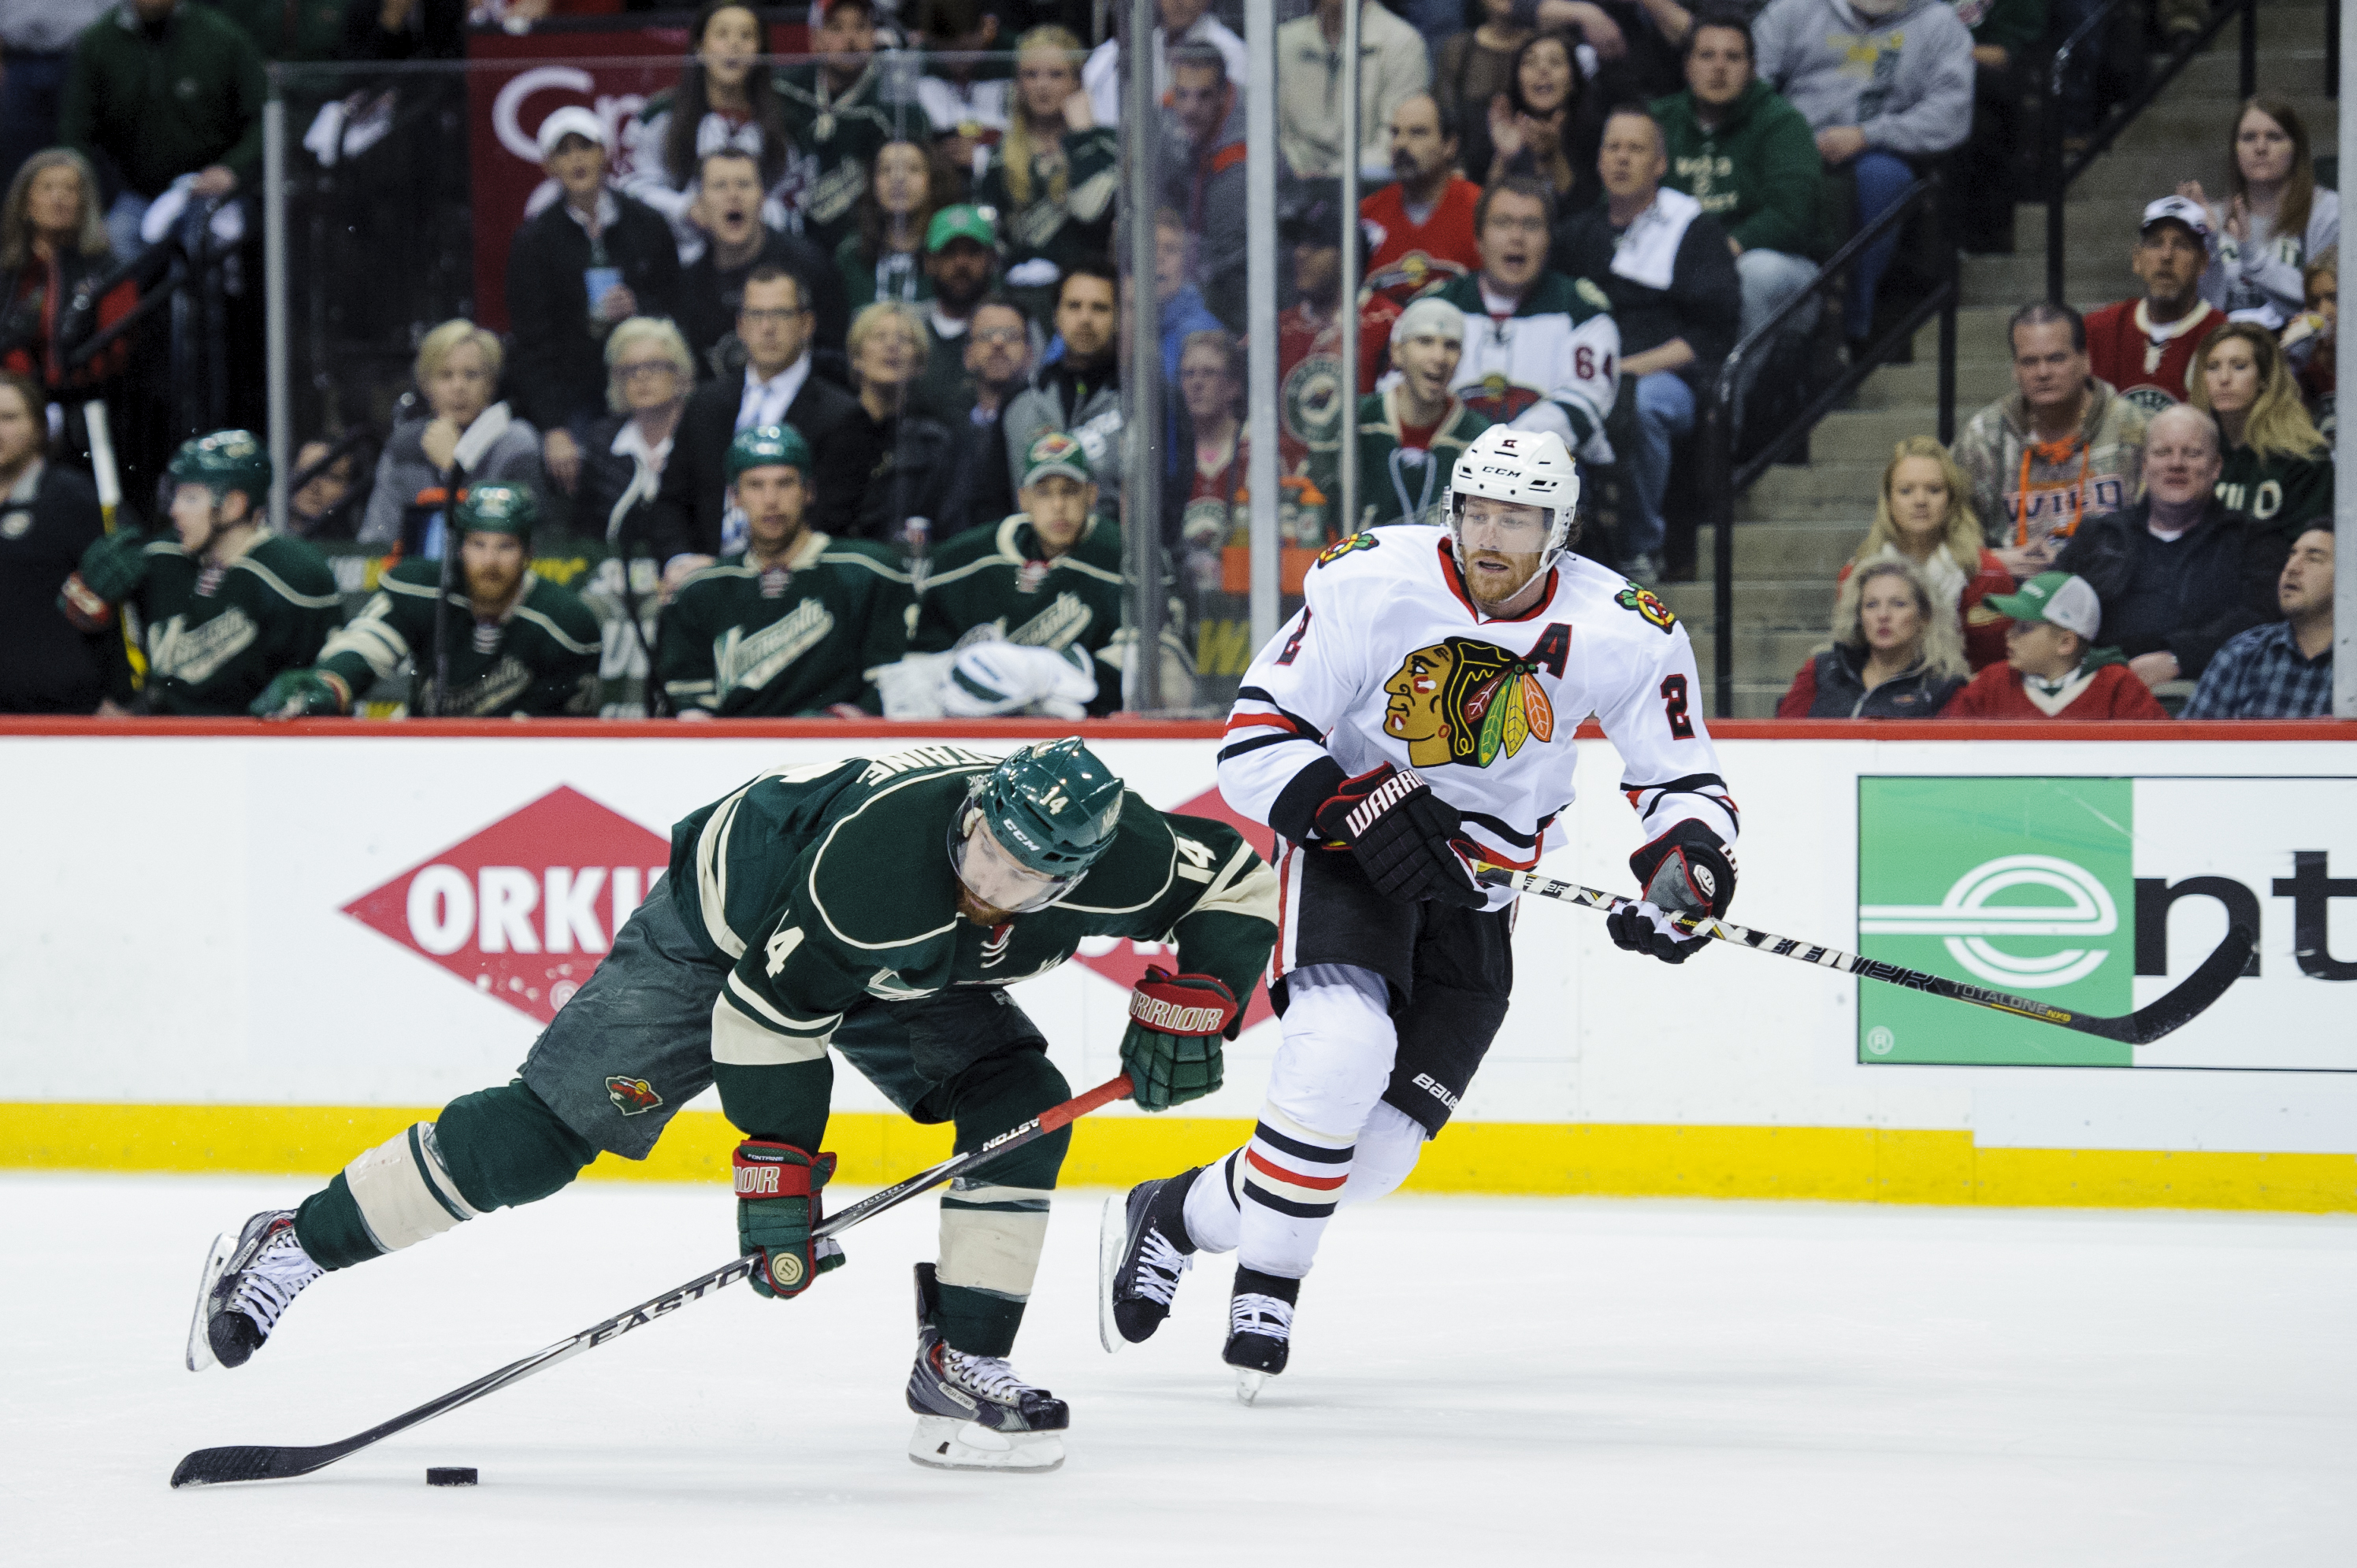 NHL playoffs schedule 2015: Wild, Flames try to avoid 3-0 deficits